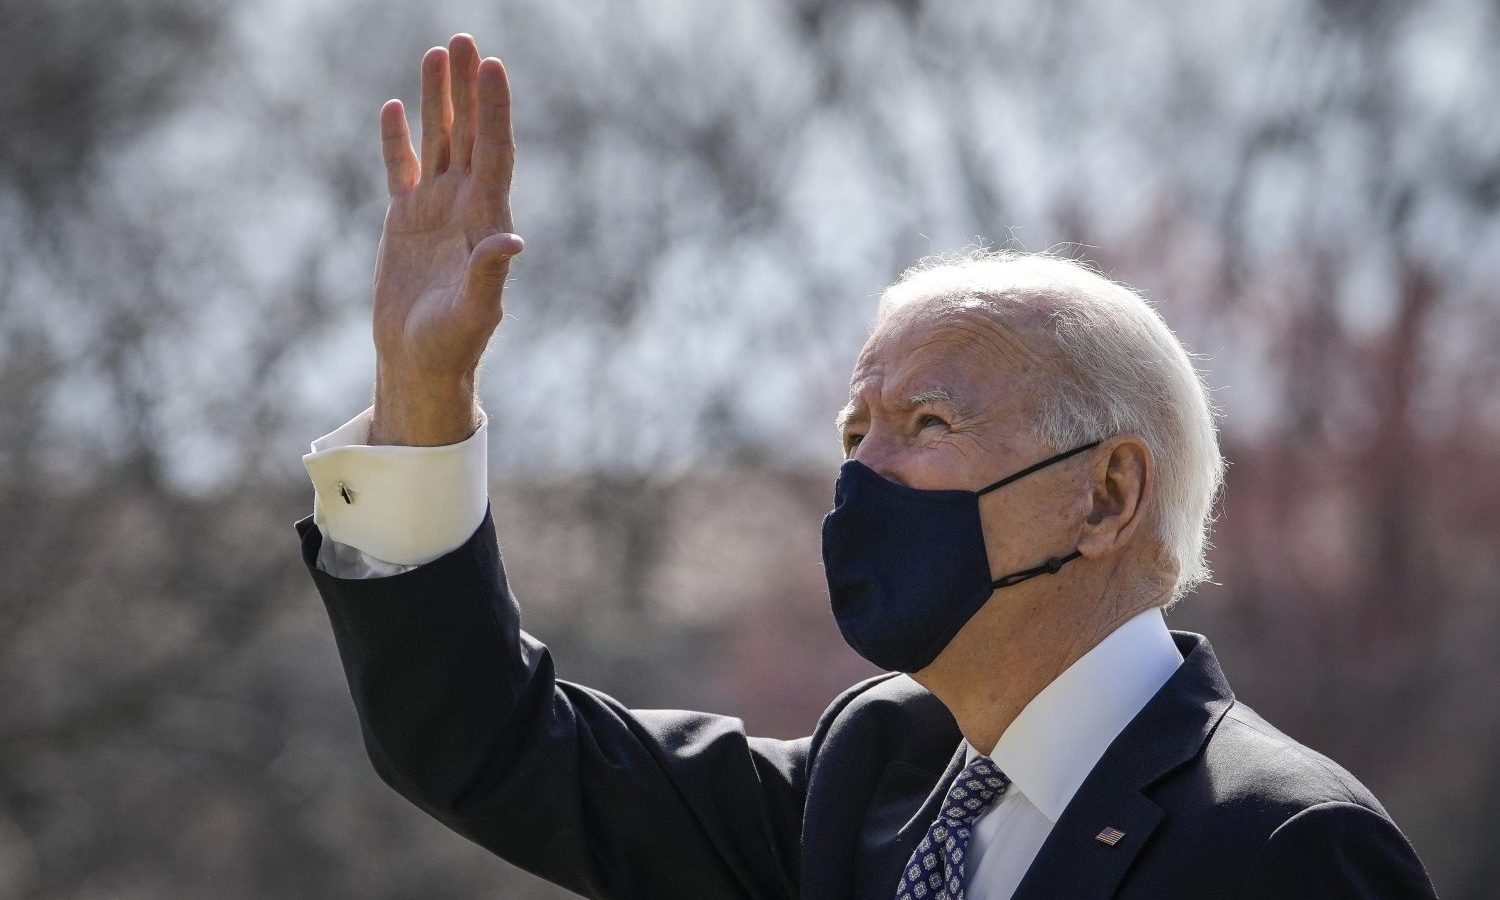 Senate Democrats And President Biden Not On Same Page With Cannabis Reform